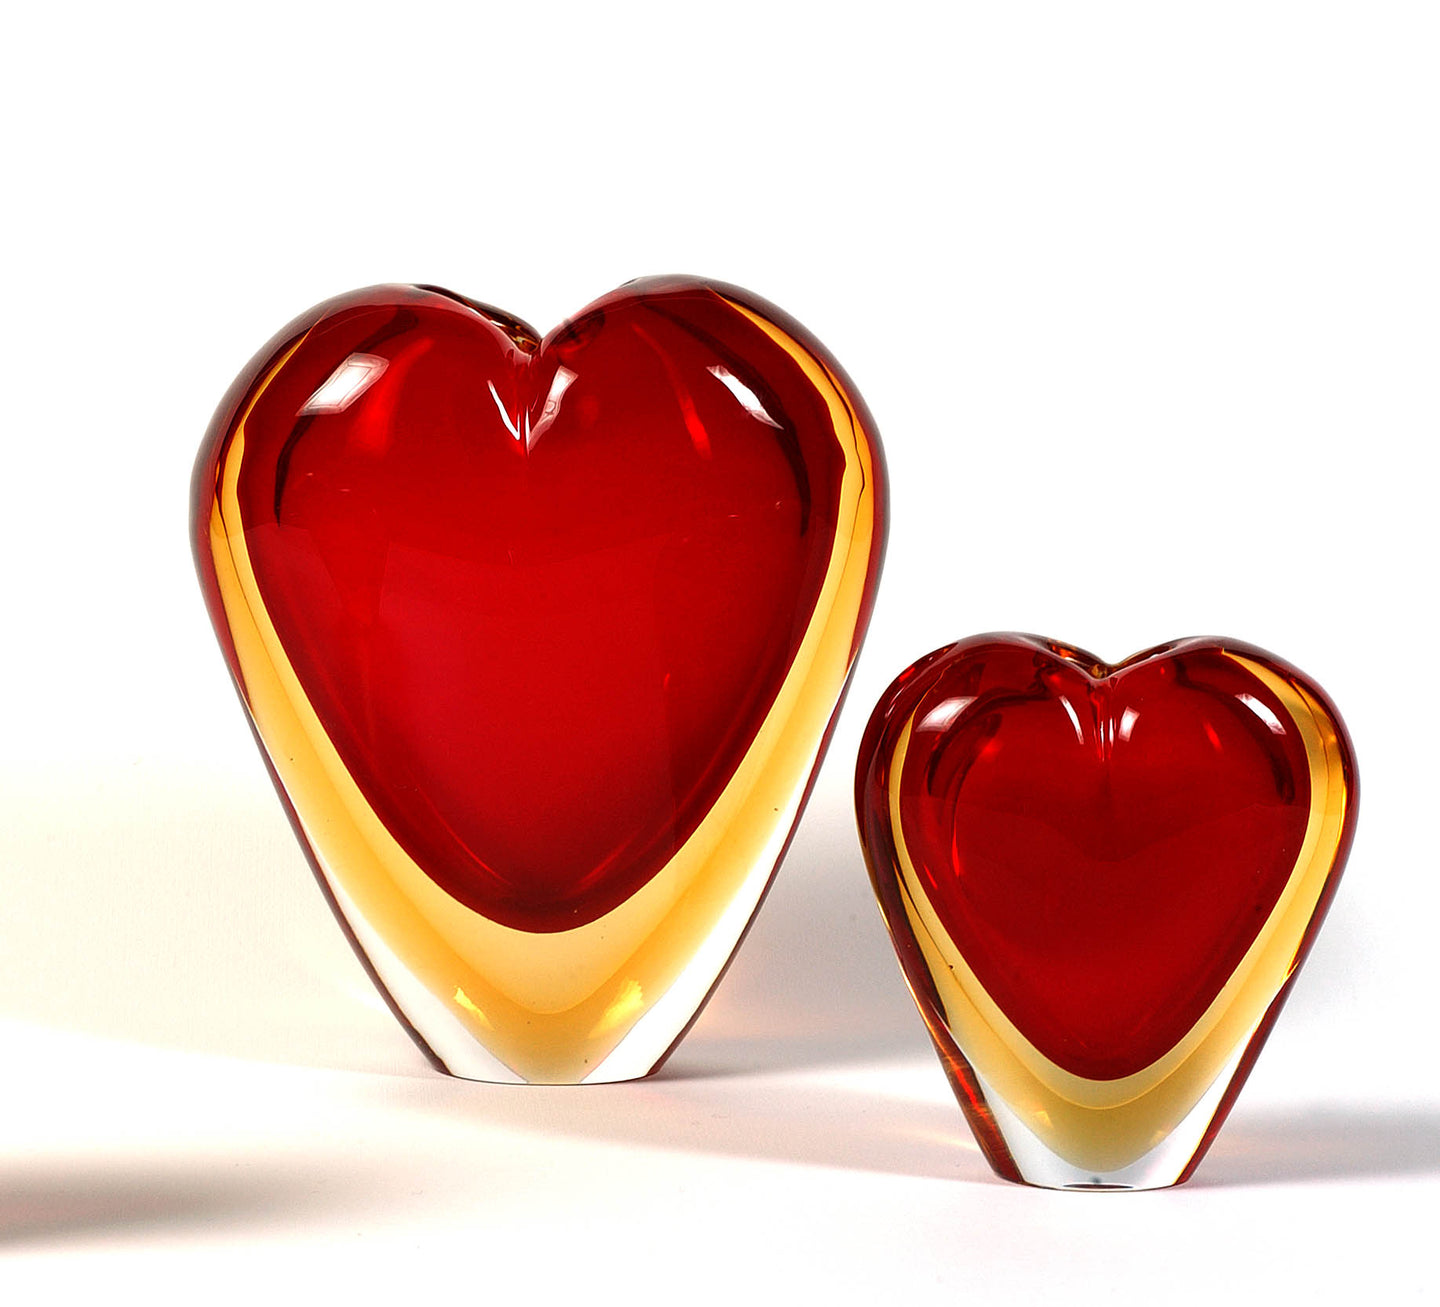 COR Heart Murano Glass Vase